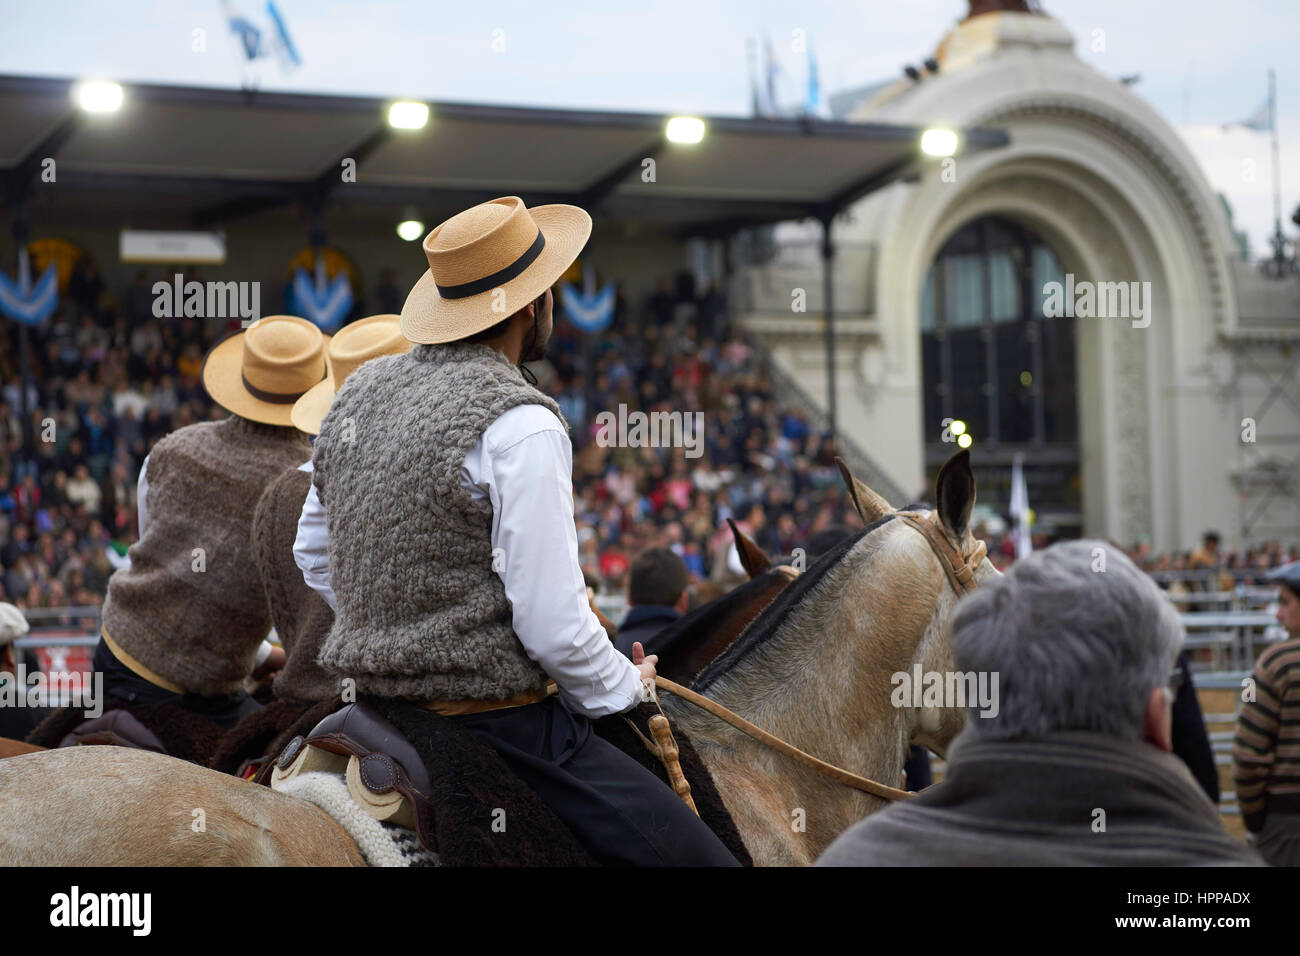 Argentinian gauchos and criollo horses at La Rural, Argentina's biggest agricultural and livestock show - Stock Image